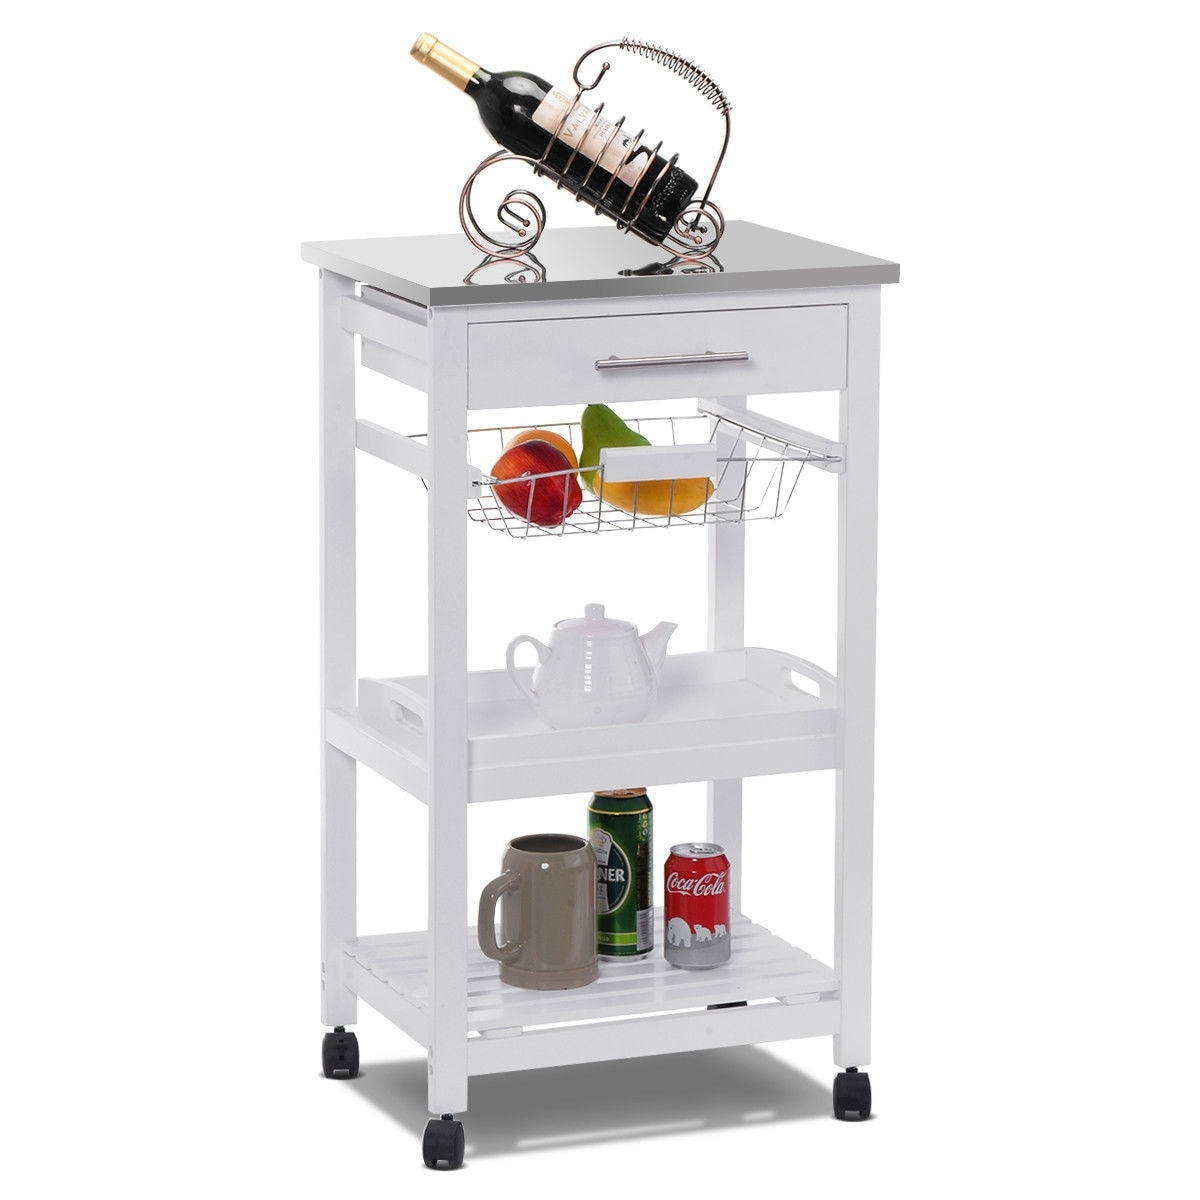 Shop costway rolling kitchen trolley cart steel top removable tray w storage basket drawers free shipping today overstock com 16745915